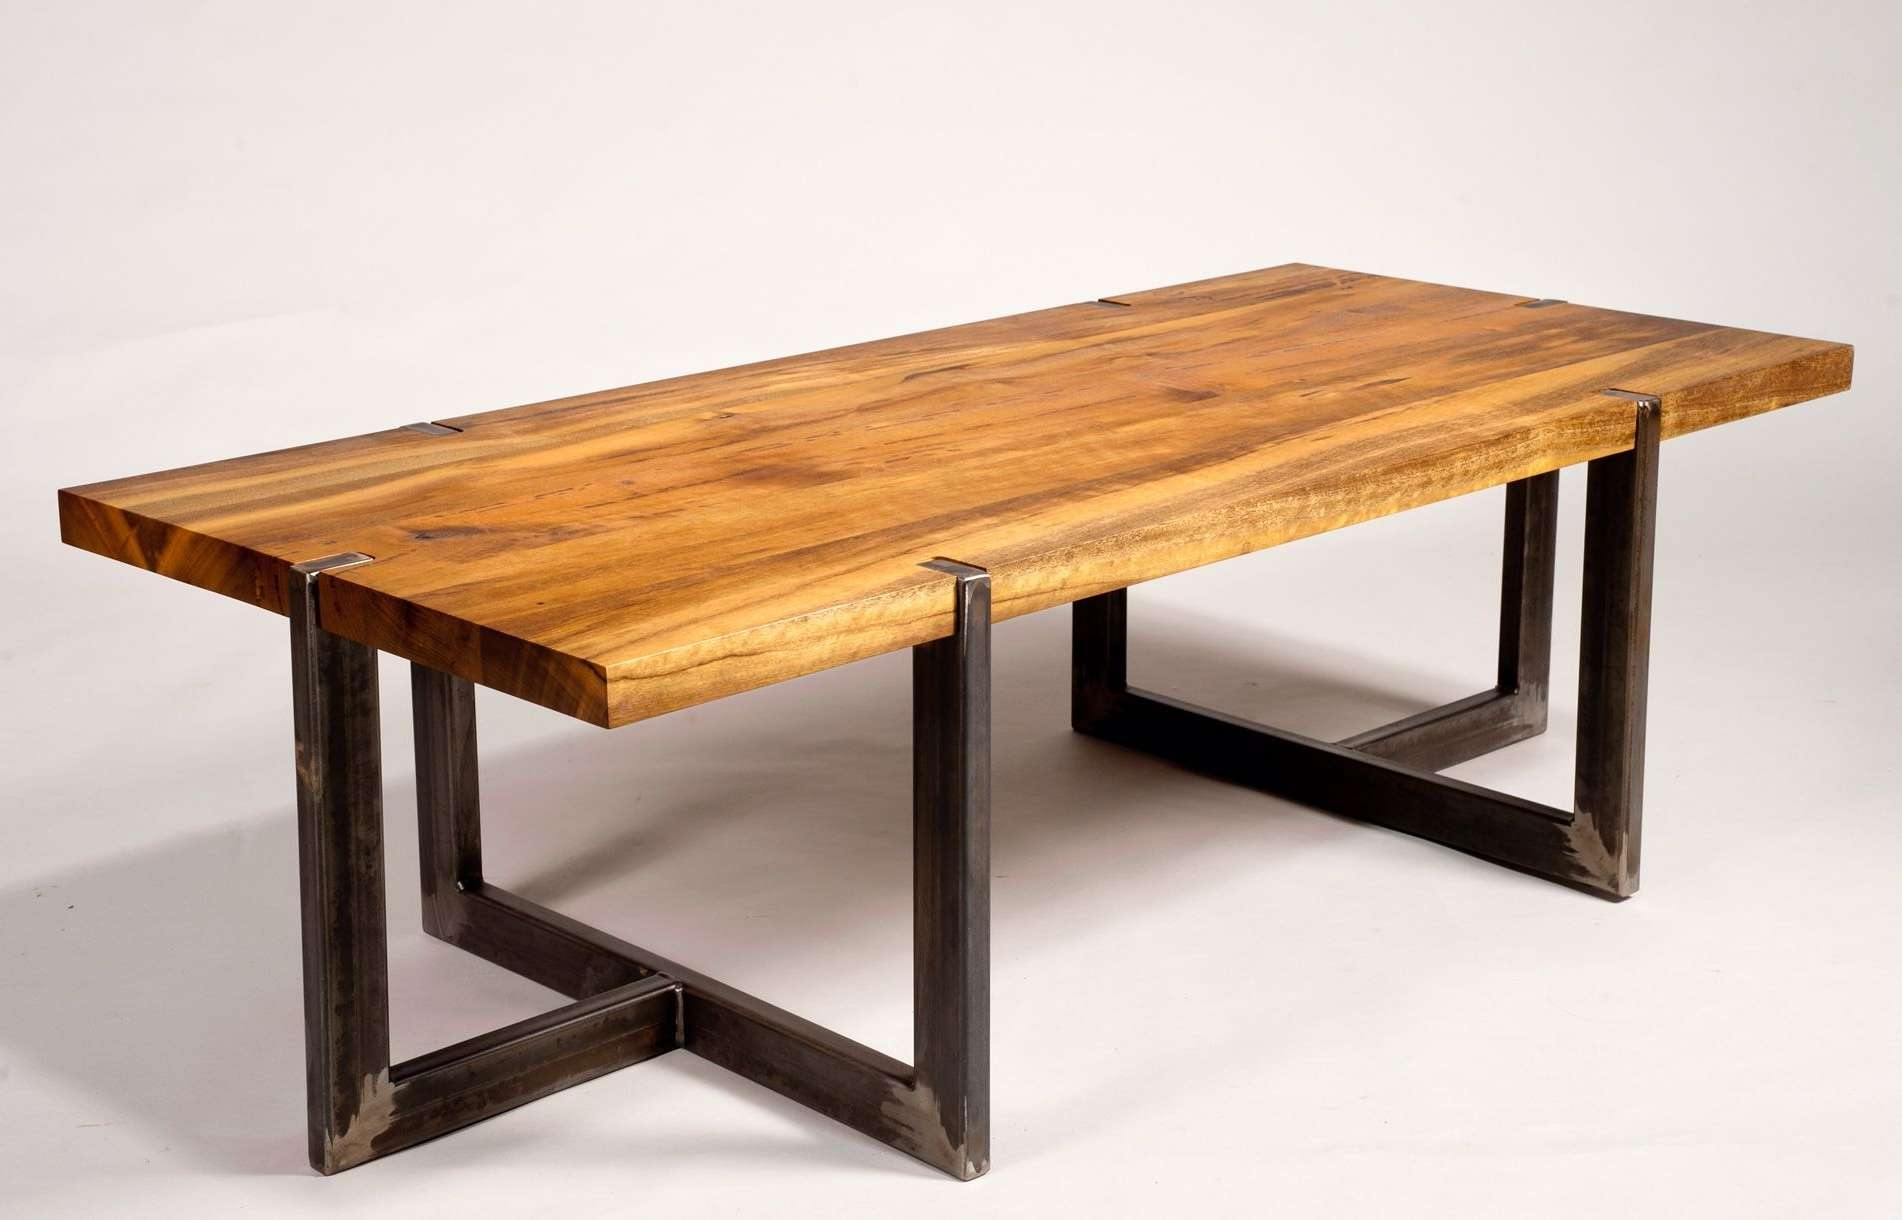 Trendy Bespoke Coffee Tables Inside Bespoke Dining & Coffee Tables – John Diven & Co (View 15 of 20)